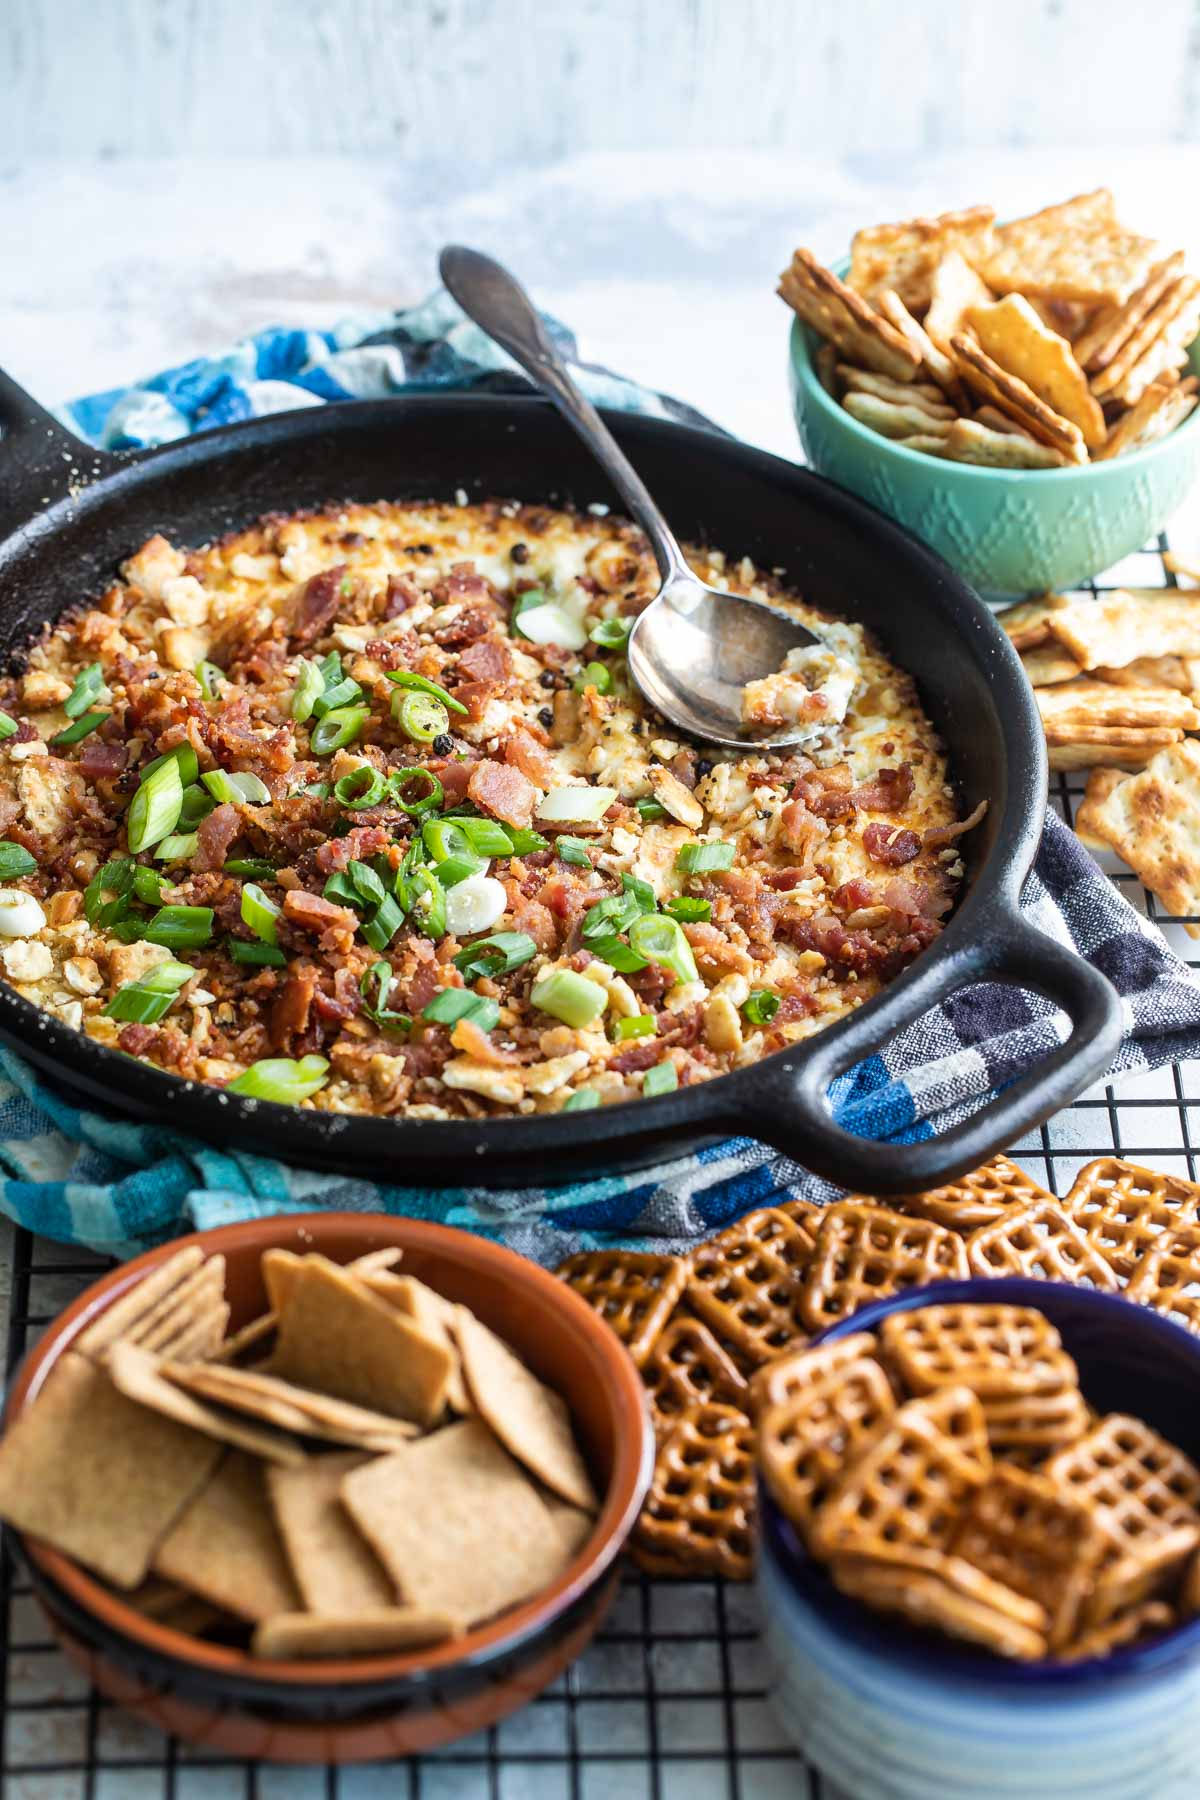 Cheesy bacon dip in a cast iron skillet.